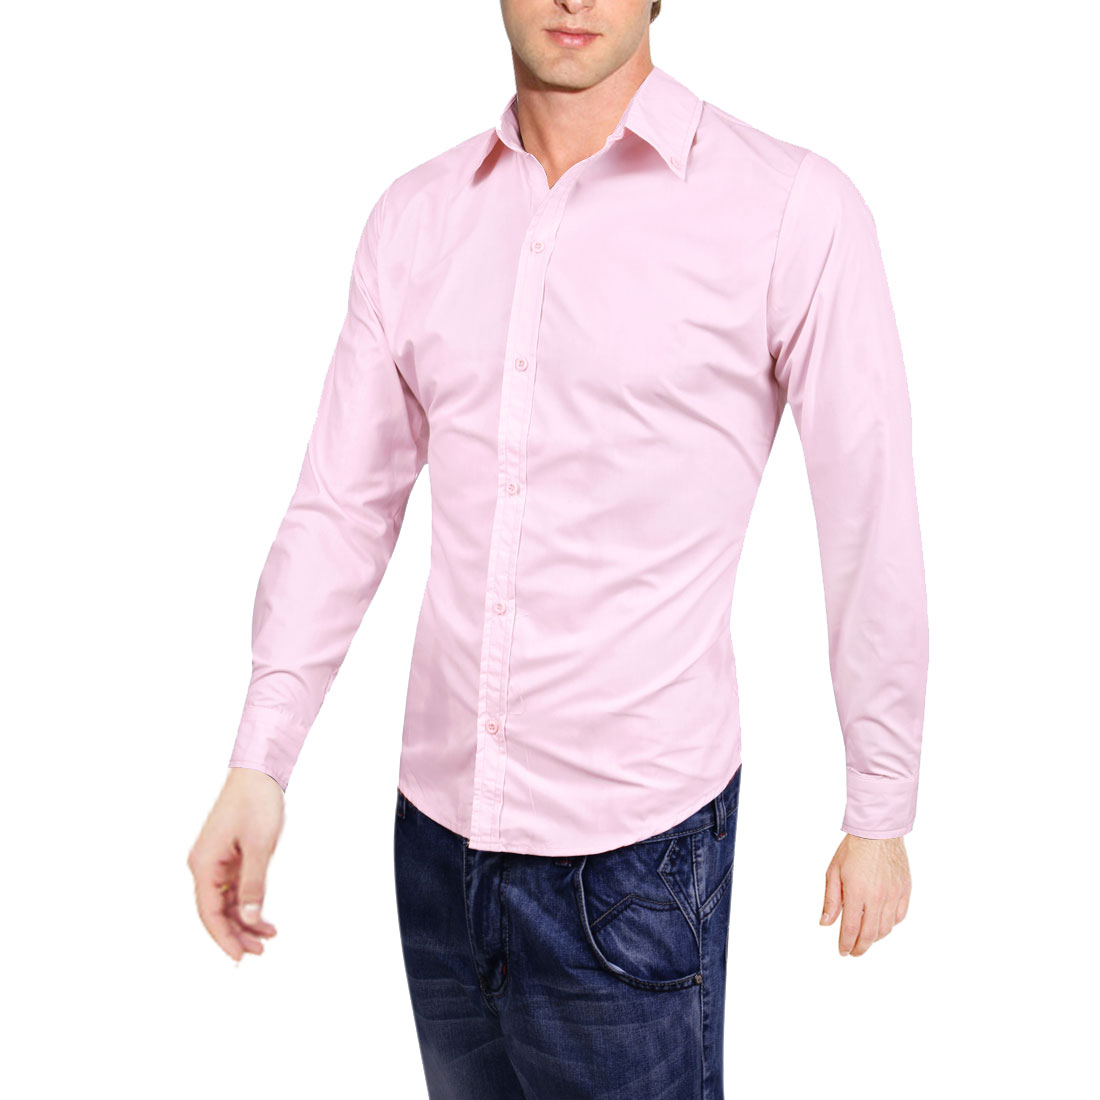 Men Point Collar Button Closure Long Sleeve Solid Color Casual Shirt Pink M